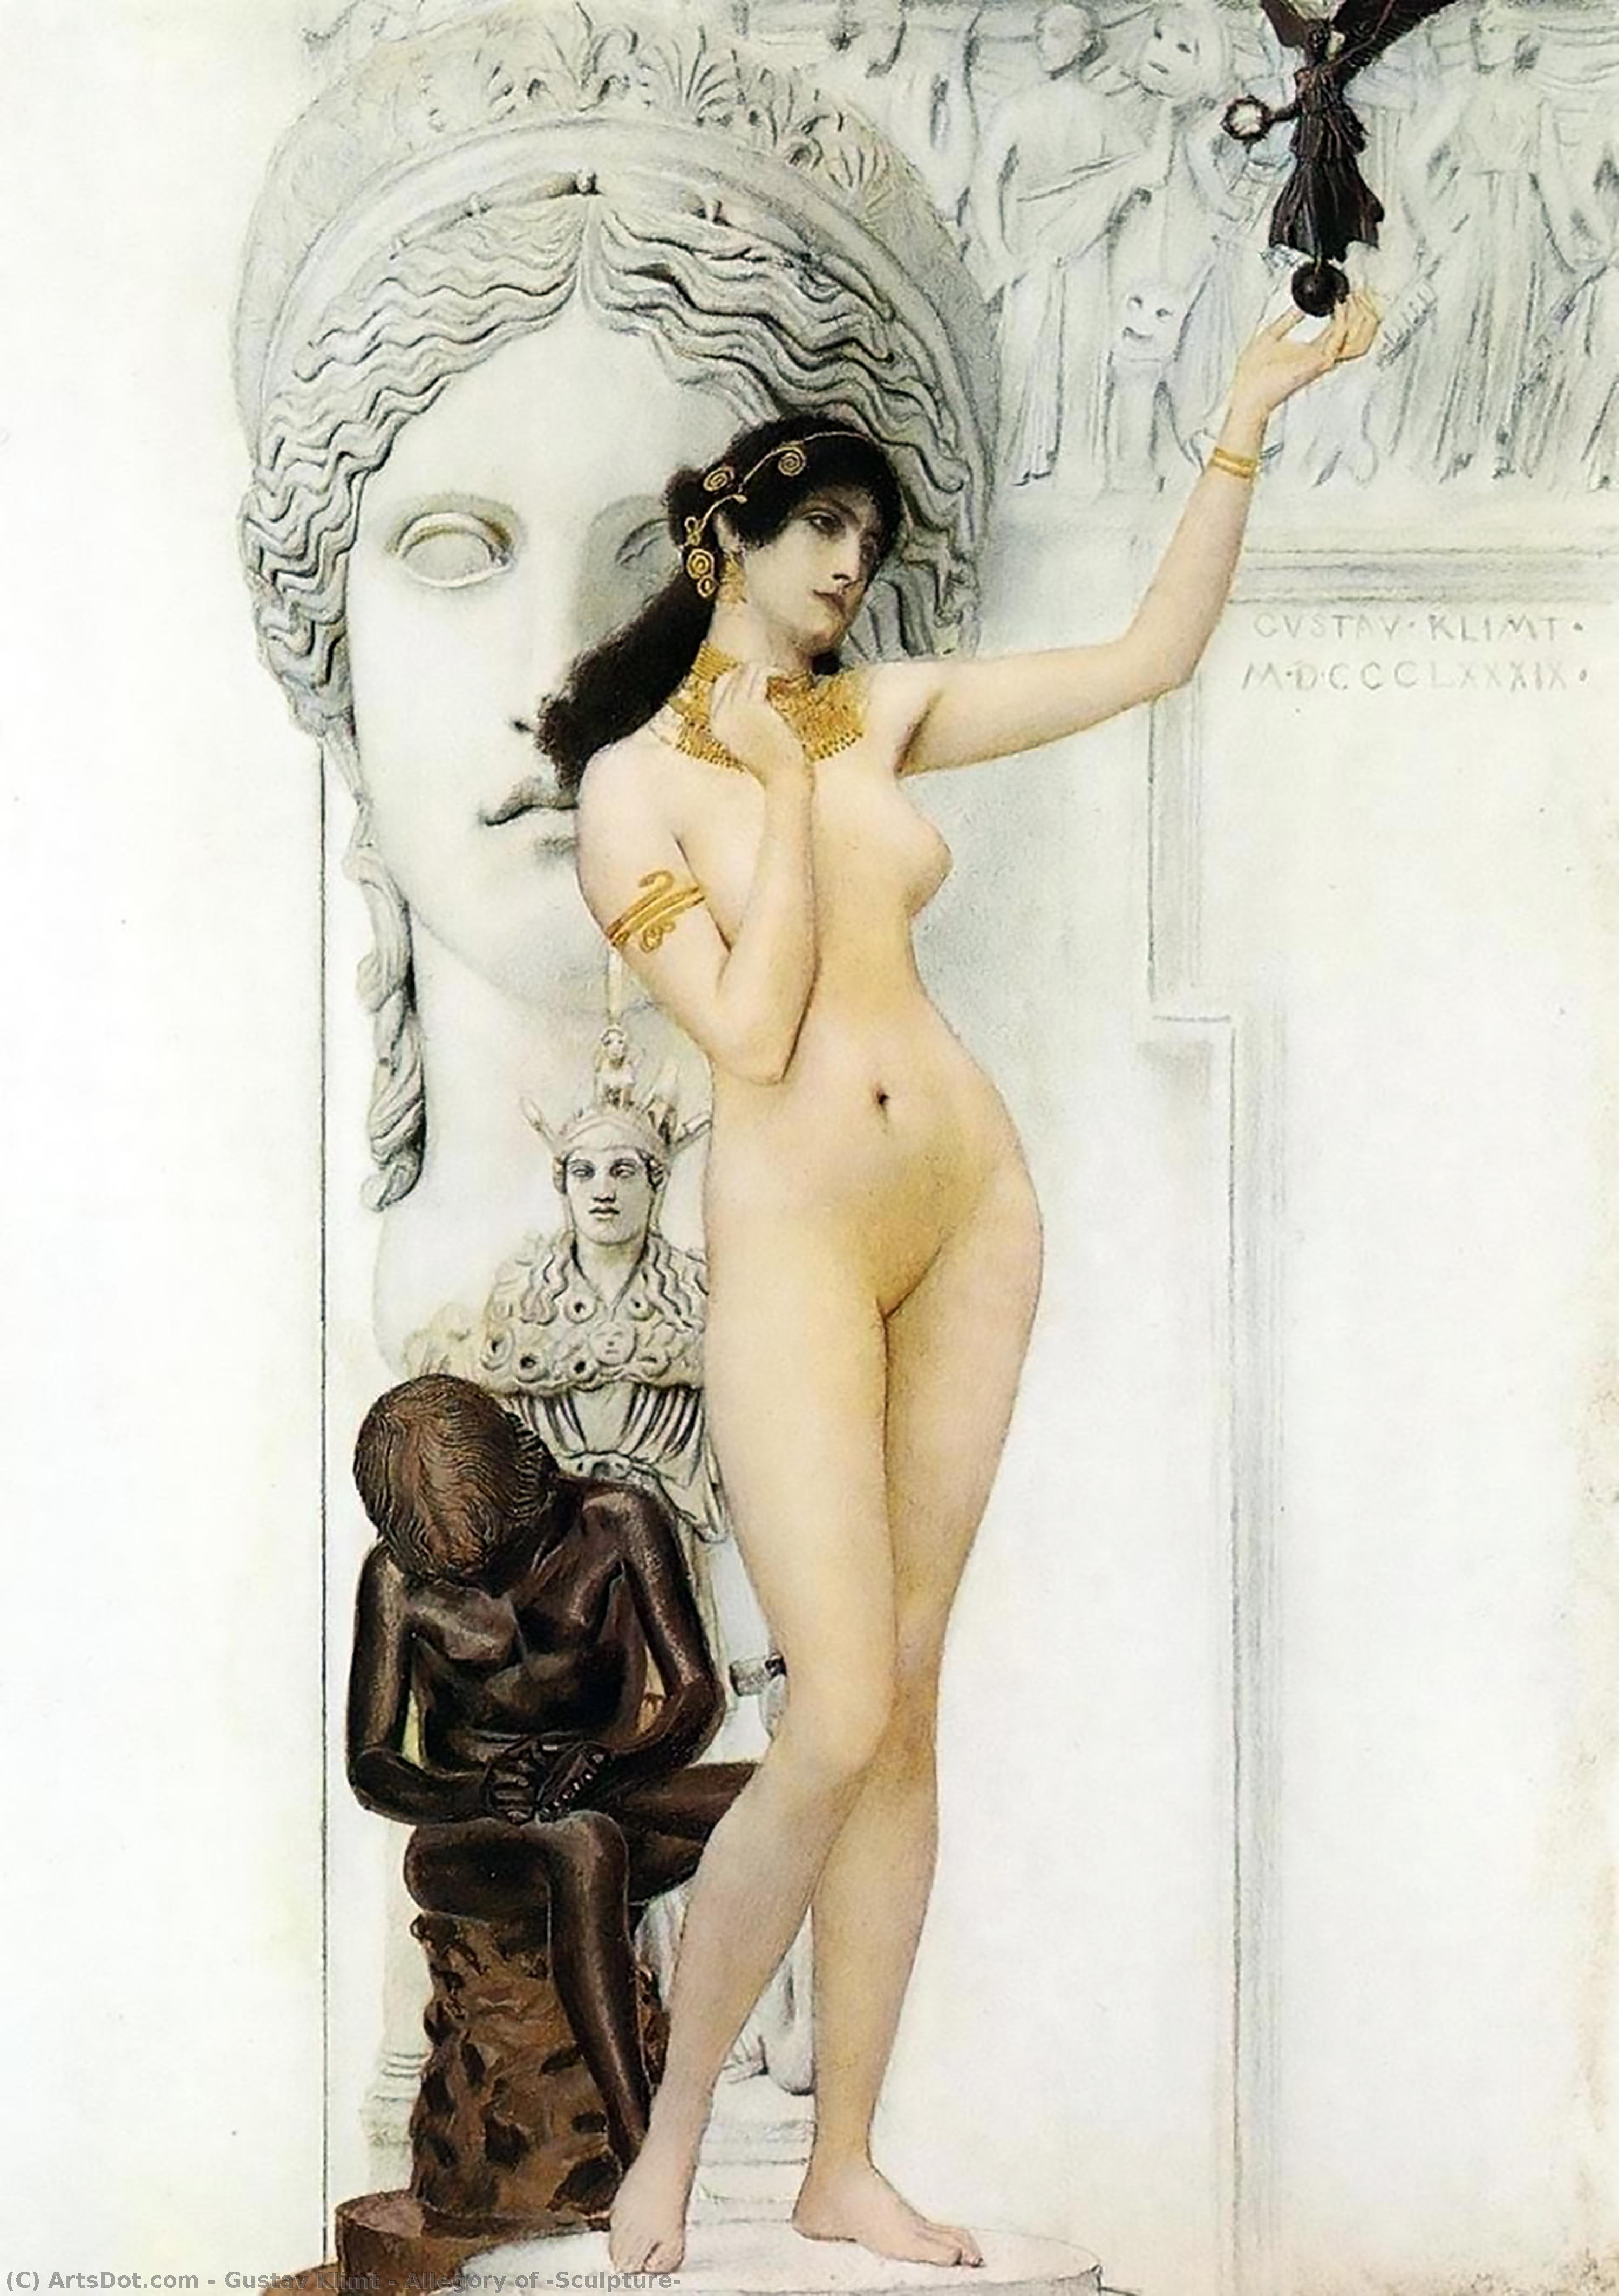 Wikioo.org - The Encyclopedia of Fine Arts - Painting, Artwork by Gustav Klimt - Allegory of 'Sculpture'